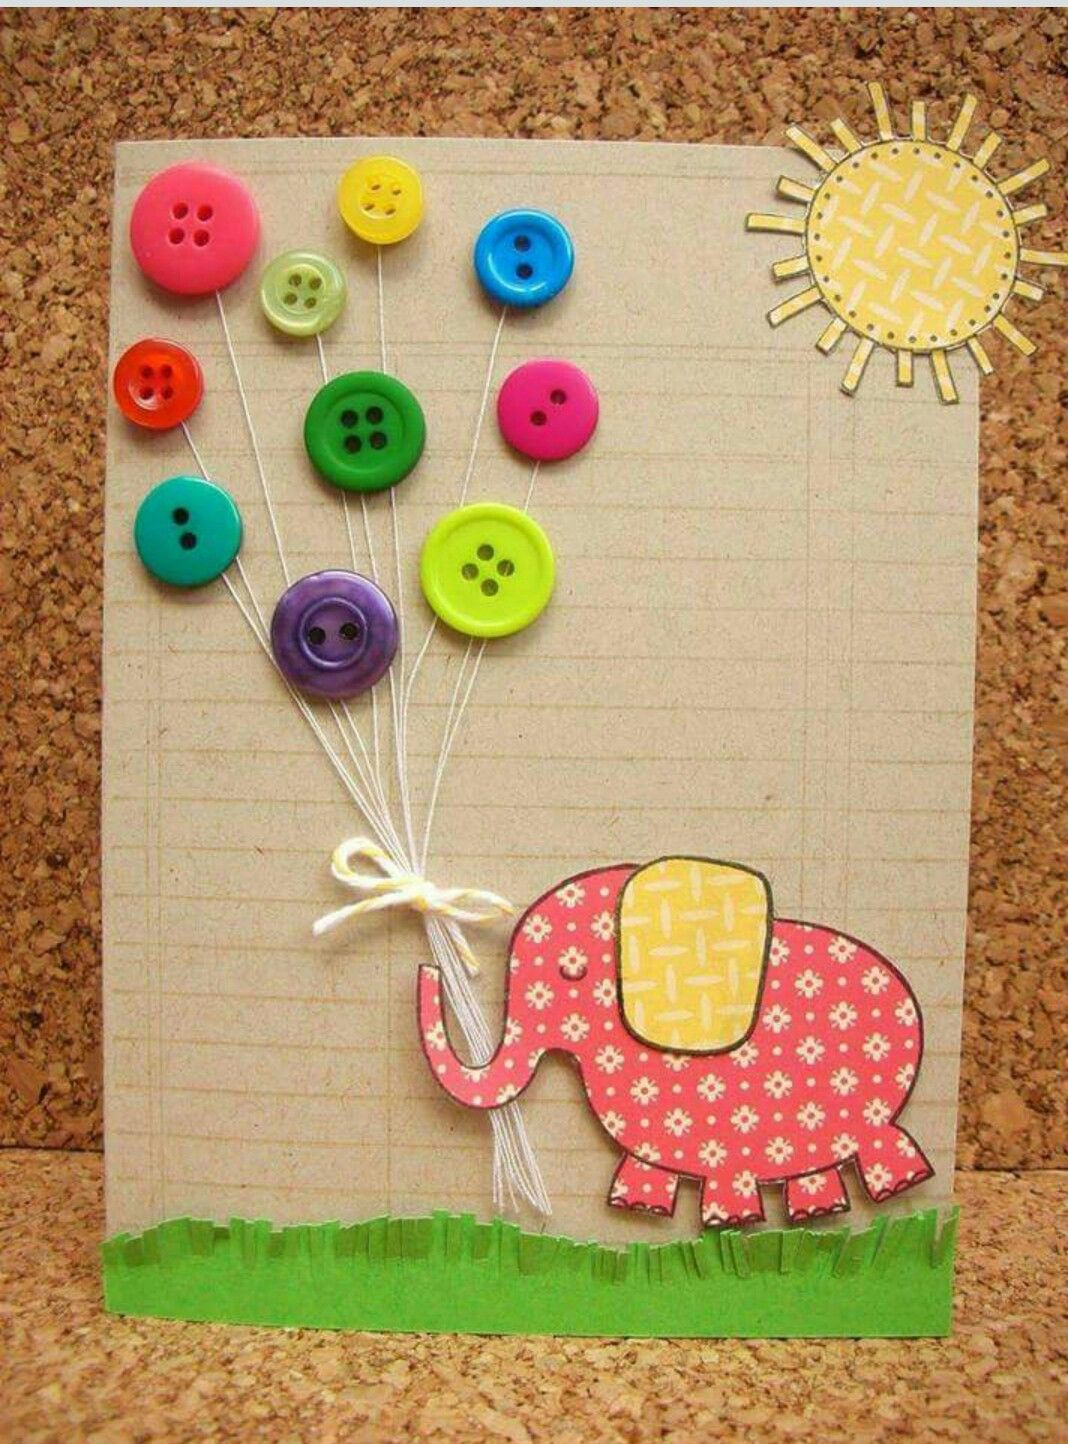 Pin by on art pinterest button crafts gift cards paper crafts diy crafts card ideas wrapping ideas do it yourself diy art iris solutioingenieria Choice Image